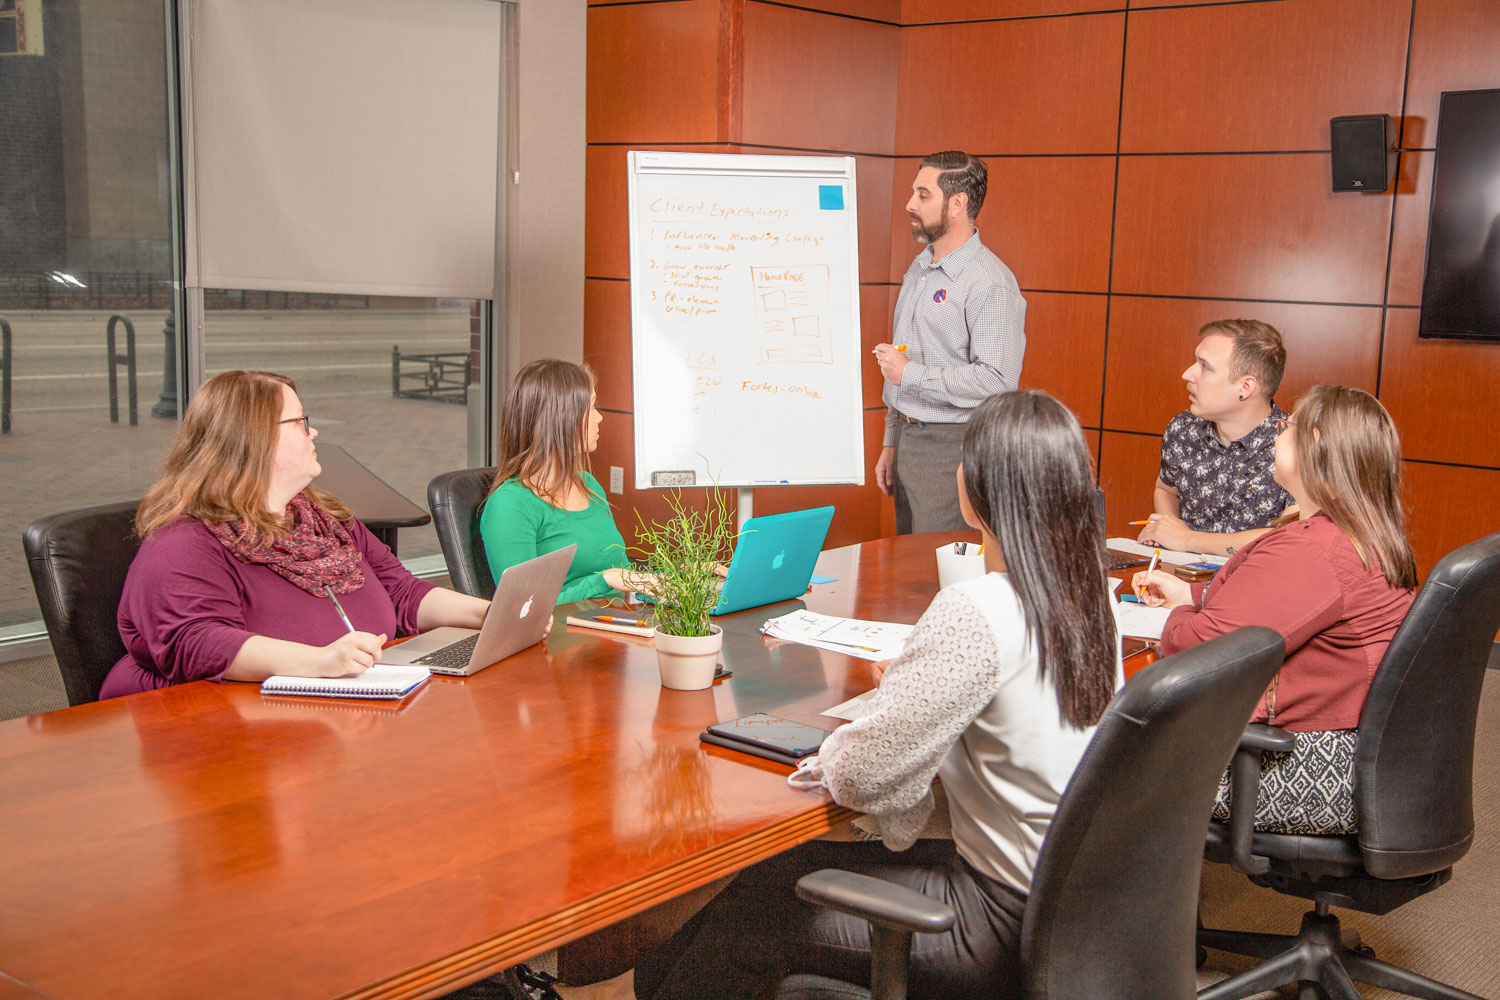 Man in conference room, presenting